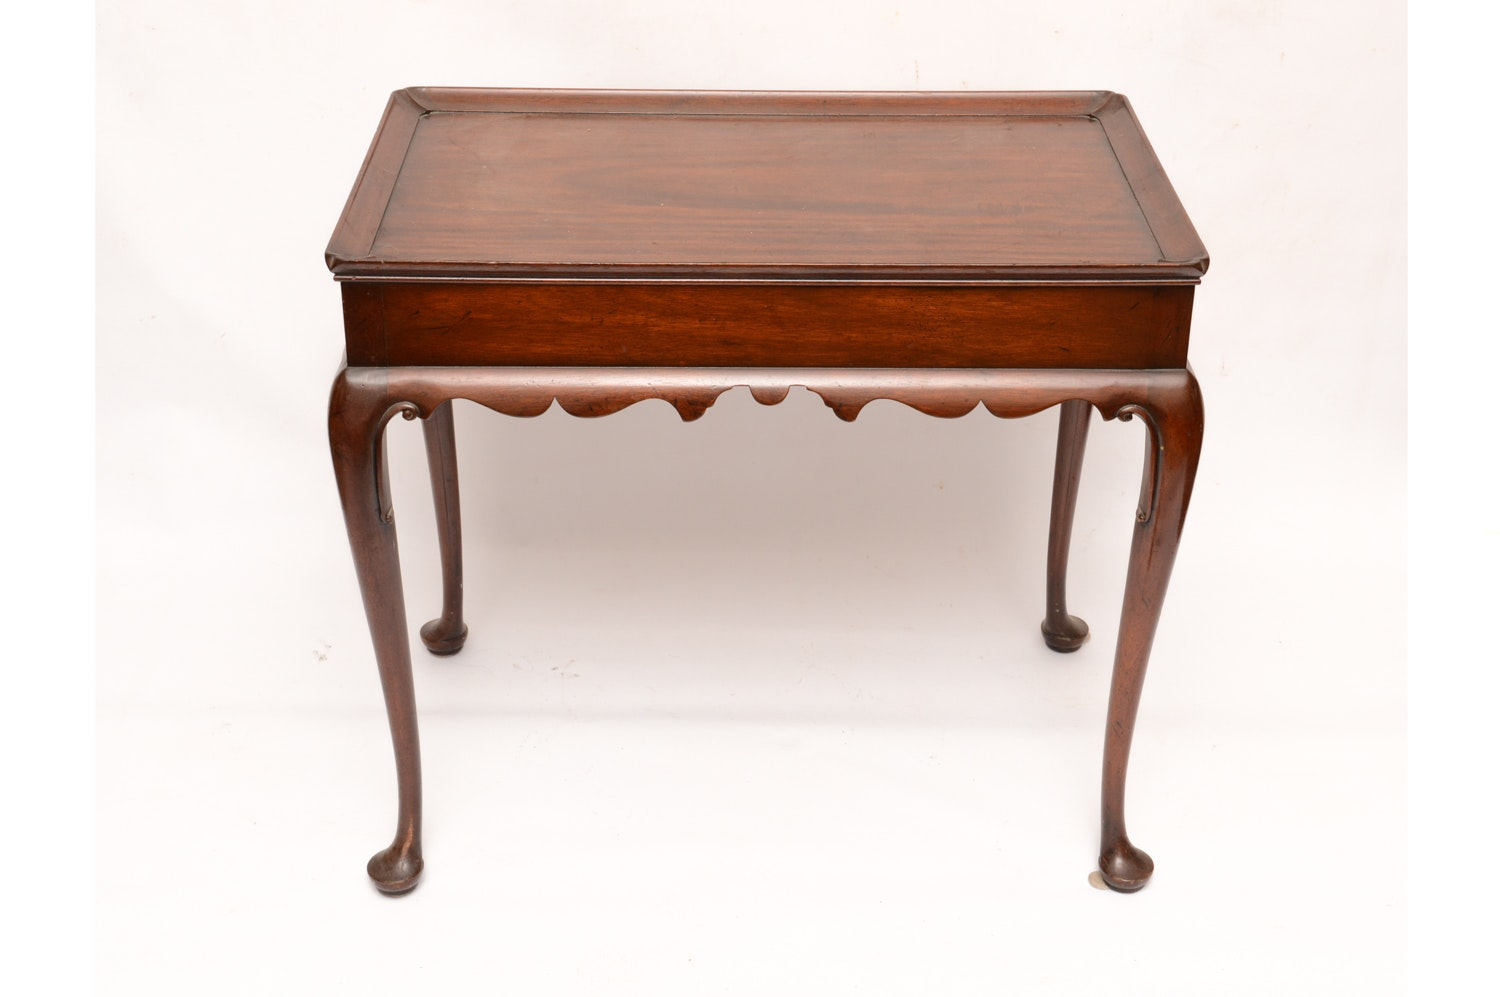 Vintage Queen Anne Style Mahogany Tea Table by Kittinger